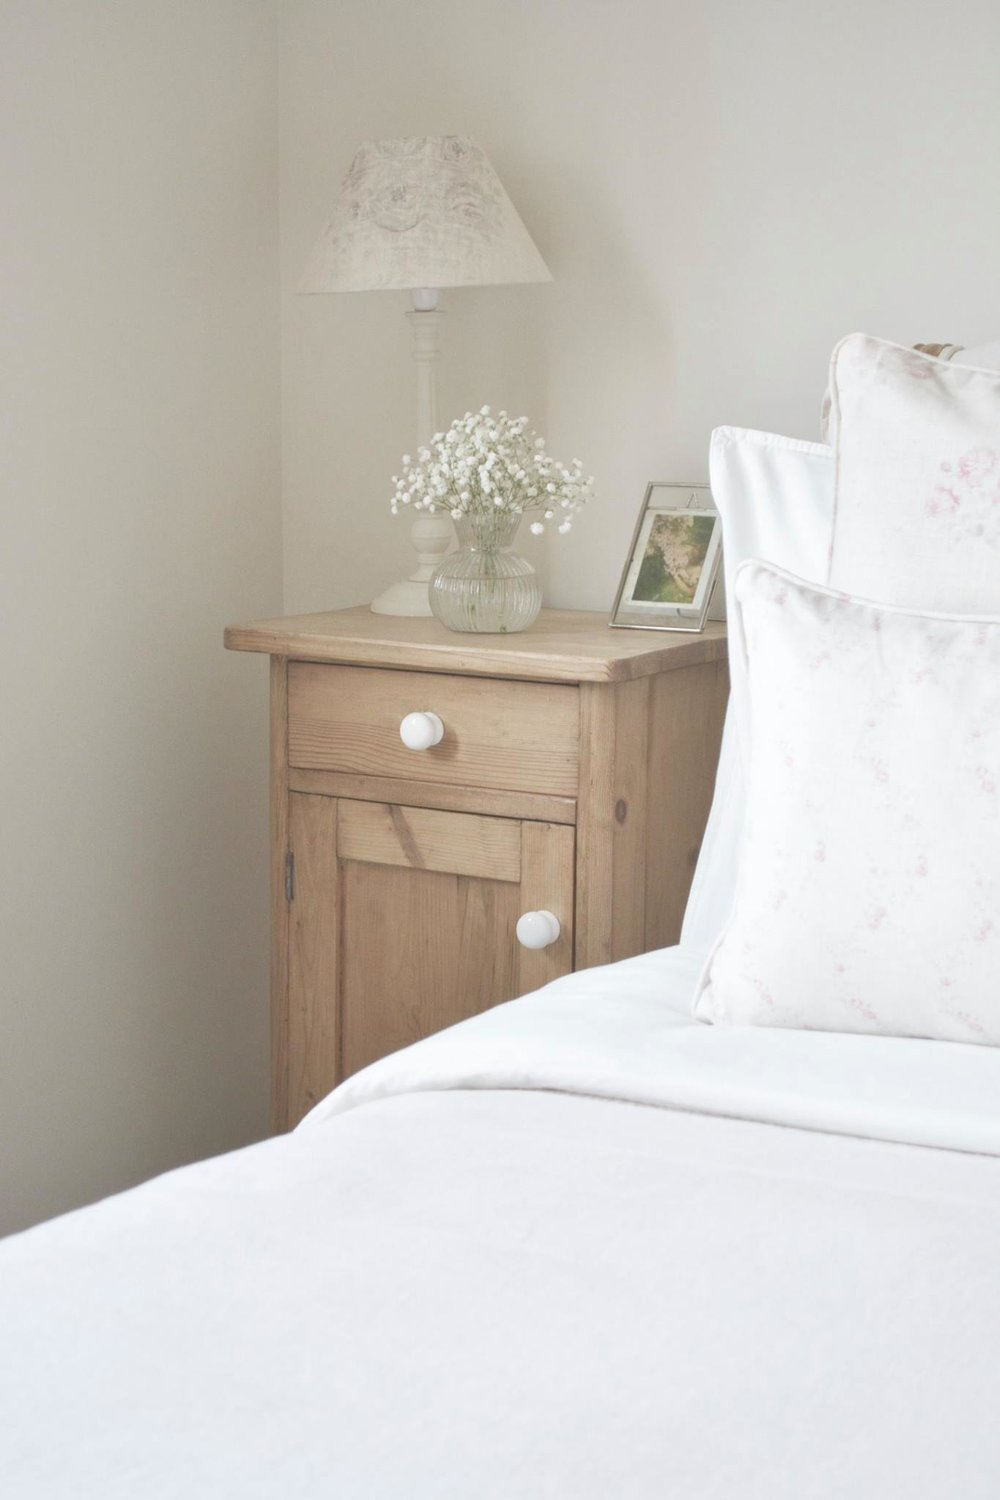 Cottage Bedroom with faded floral linens designed by www.hlinteriors.co.uk7.jpg